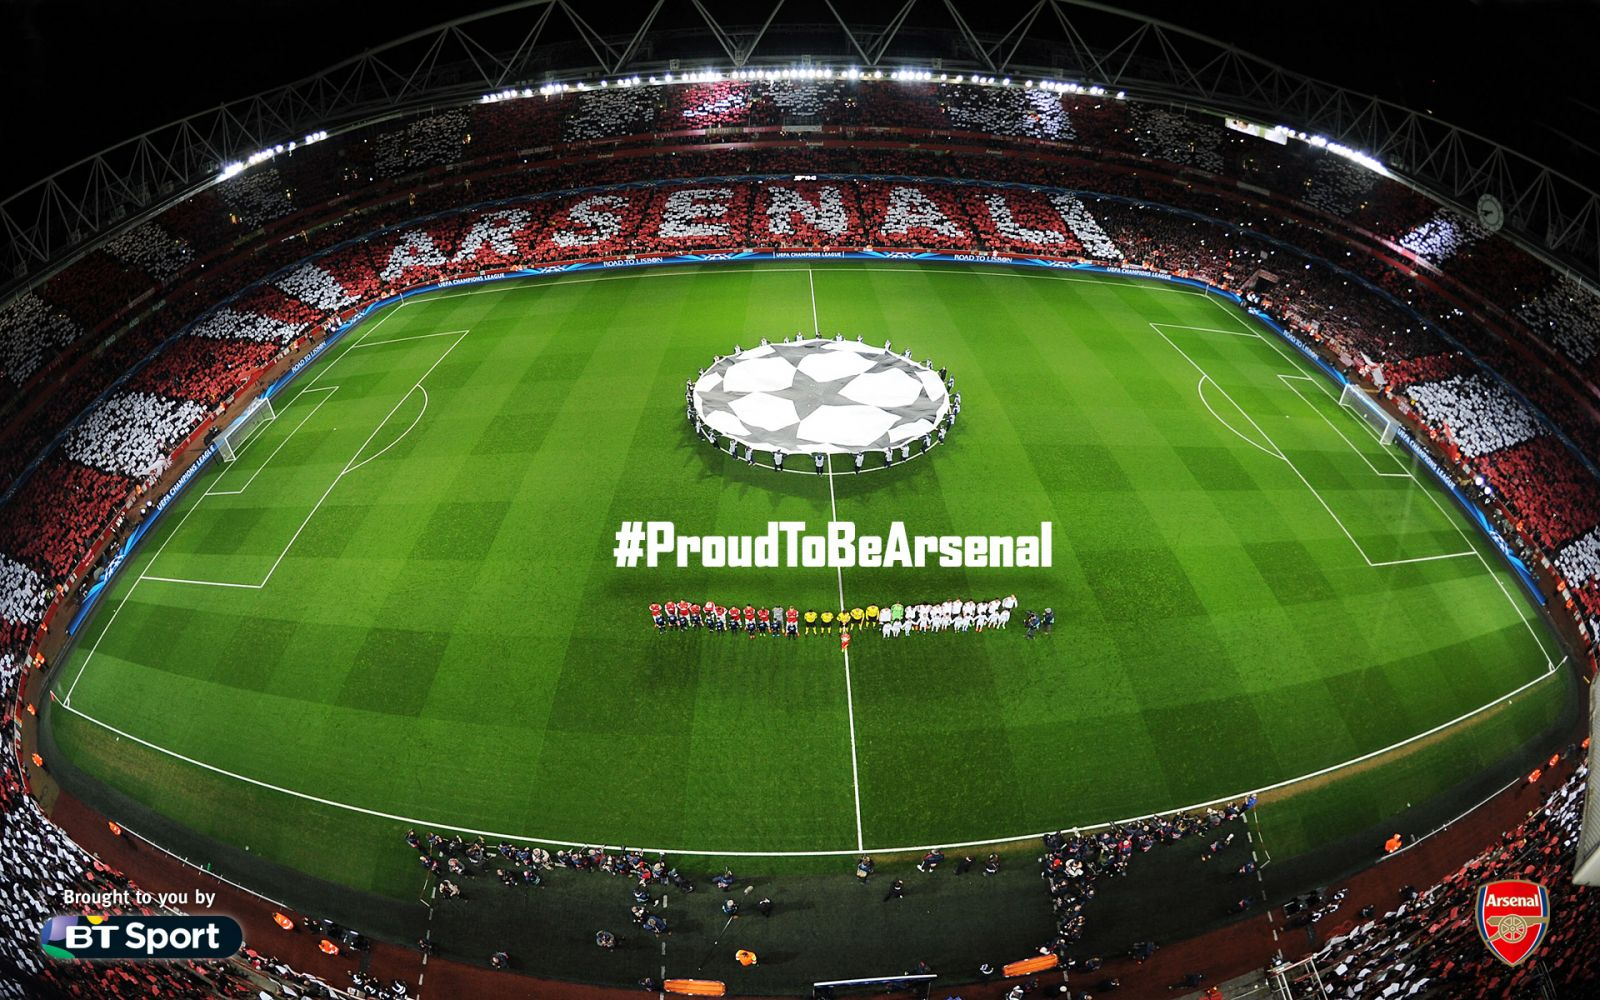 Proud To Be Arsenal